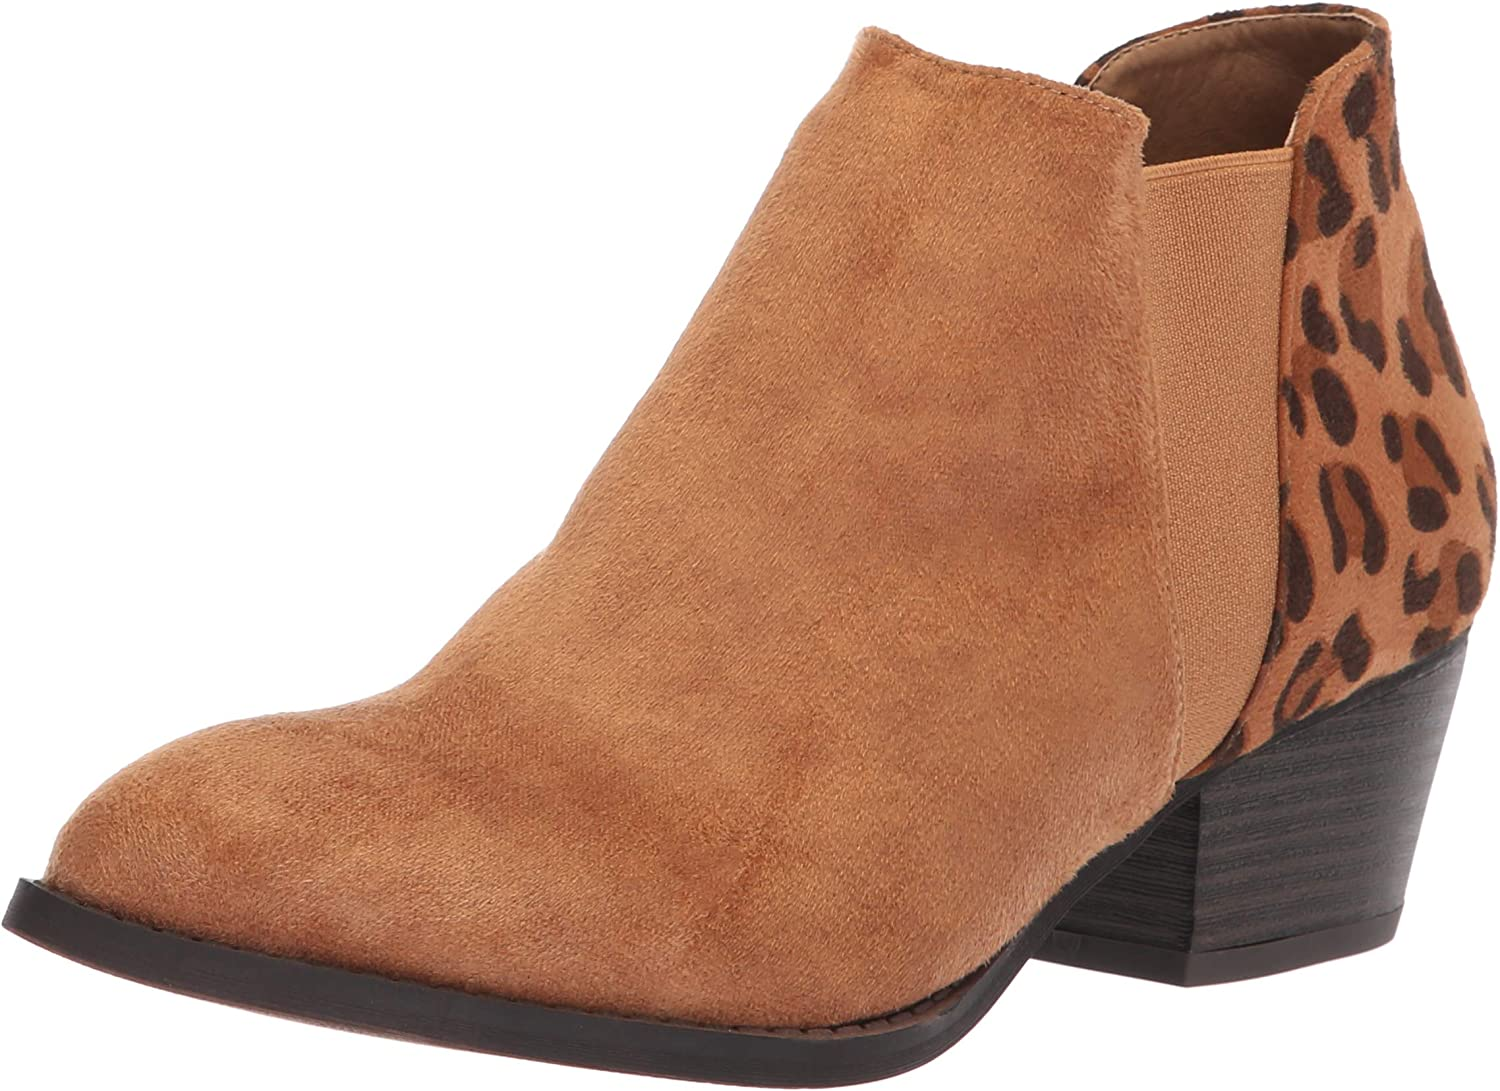 CL by Chinese Laundry Women's Corbin Chelsea Boot